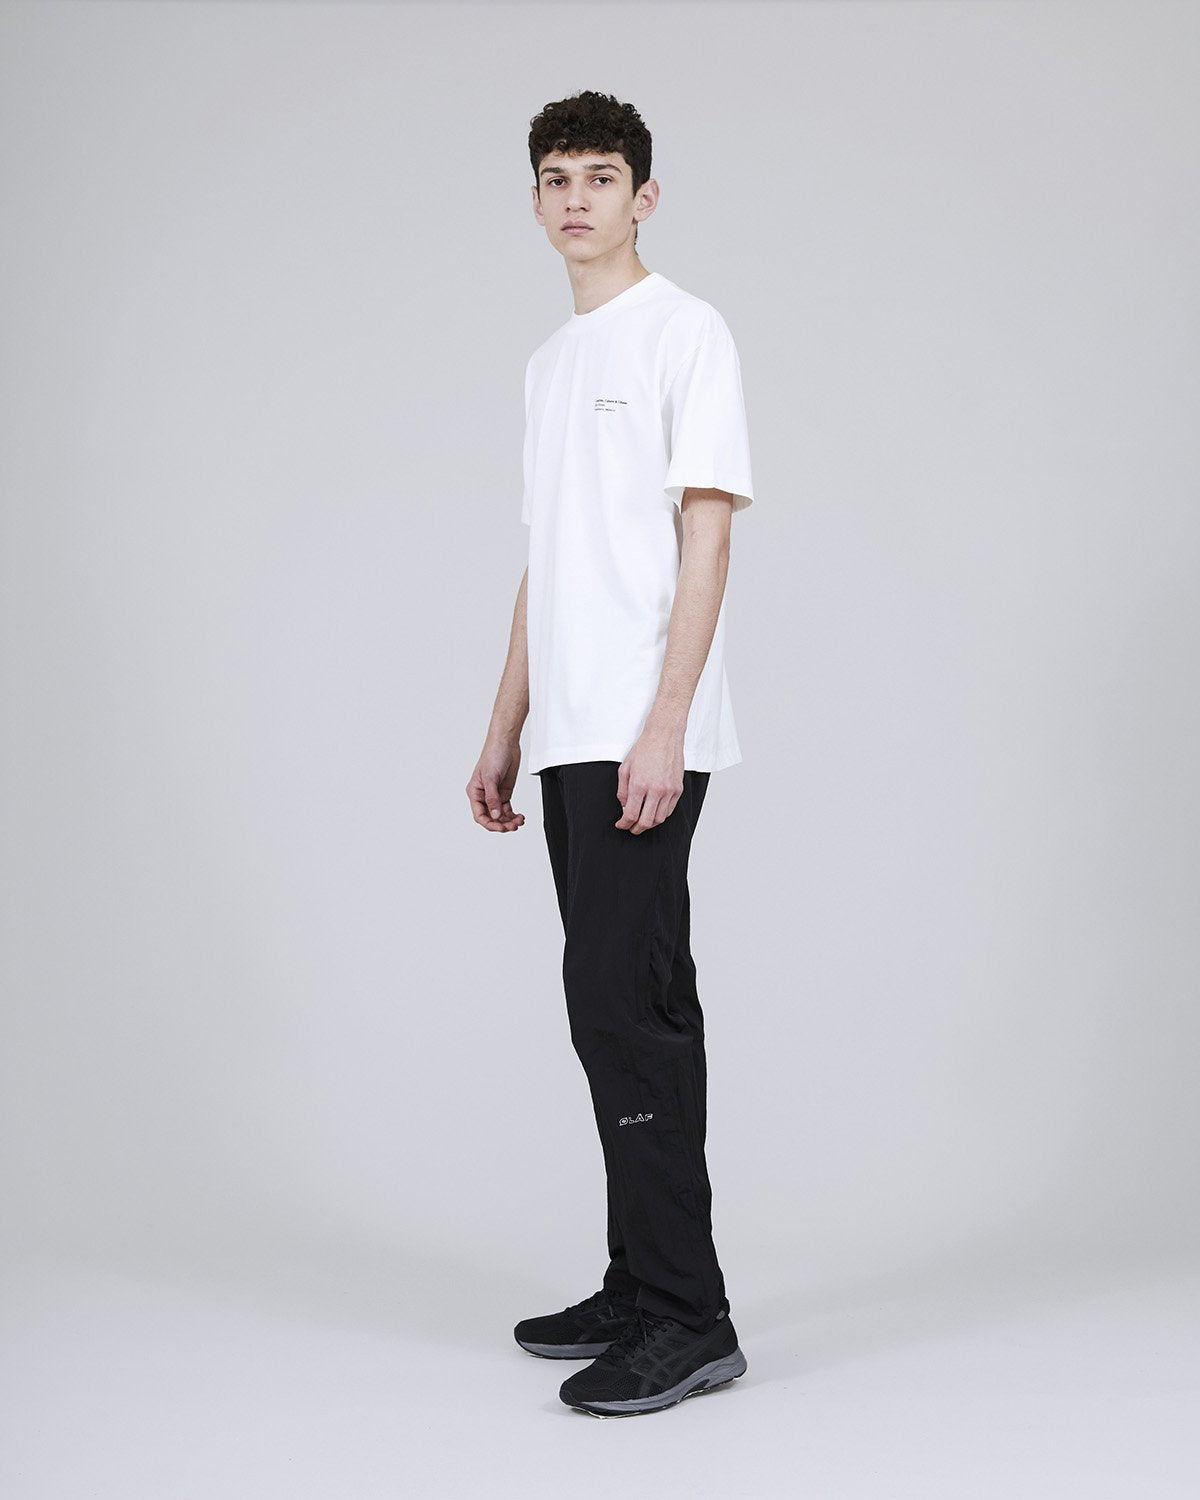 ØLÅF x Halal T - Olya Oleinic White, Portuguese fabric, 100% cotton (220 grams/sqm), Post wash, Fine ribbed collar, Made in Portugal